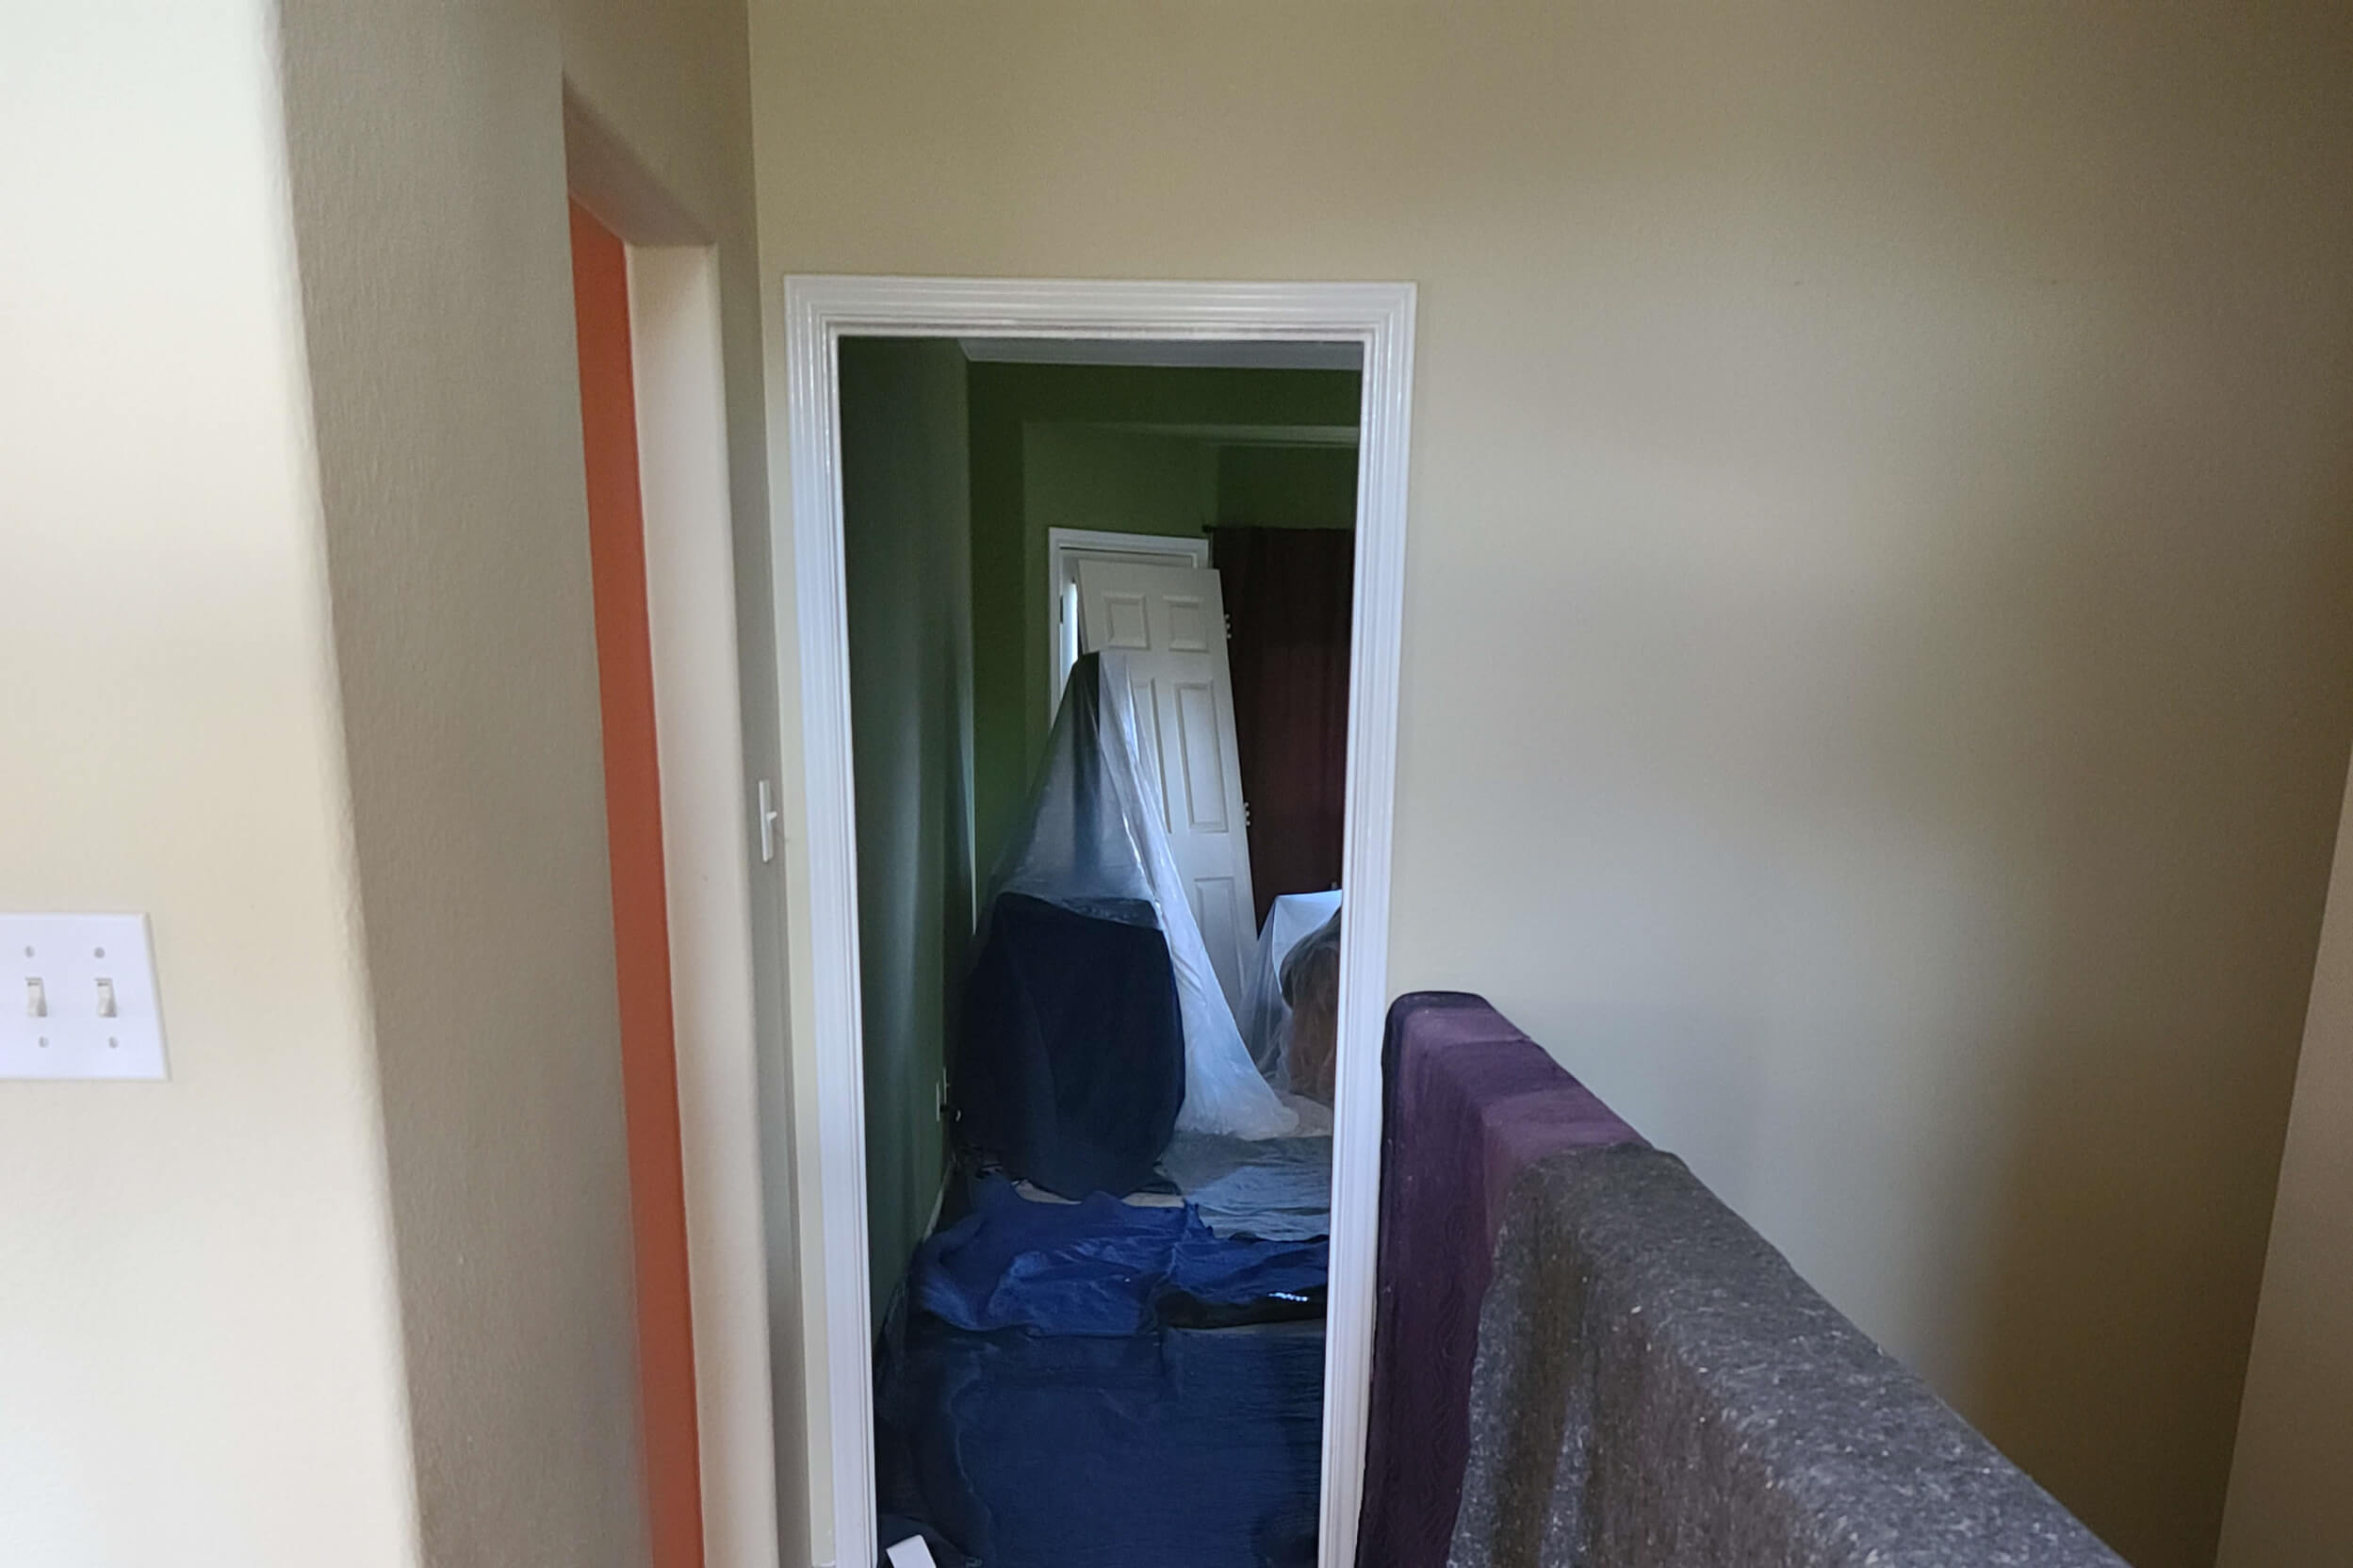 Inside of a home being remodeled with protective sheets put down on the floor and on the stair railing